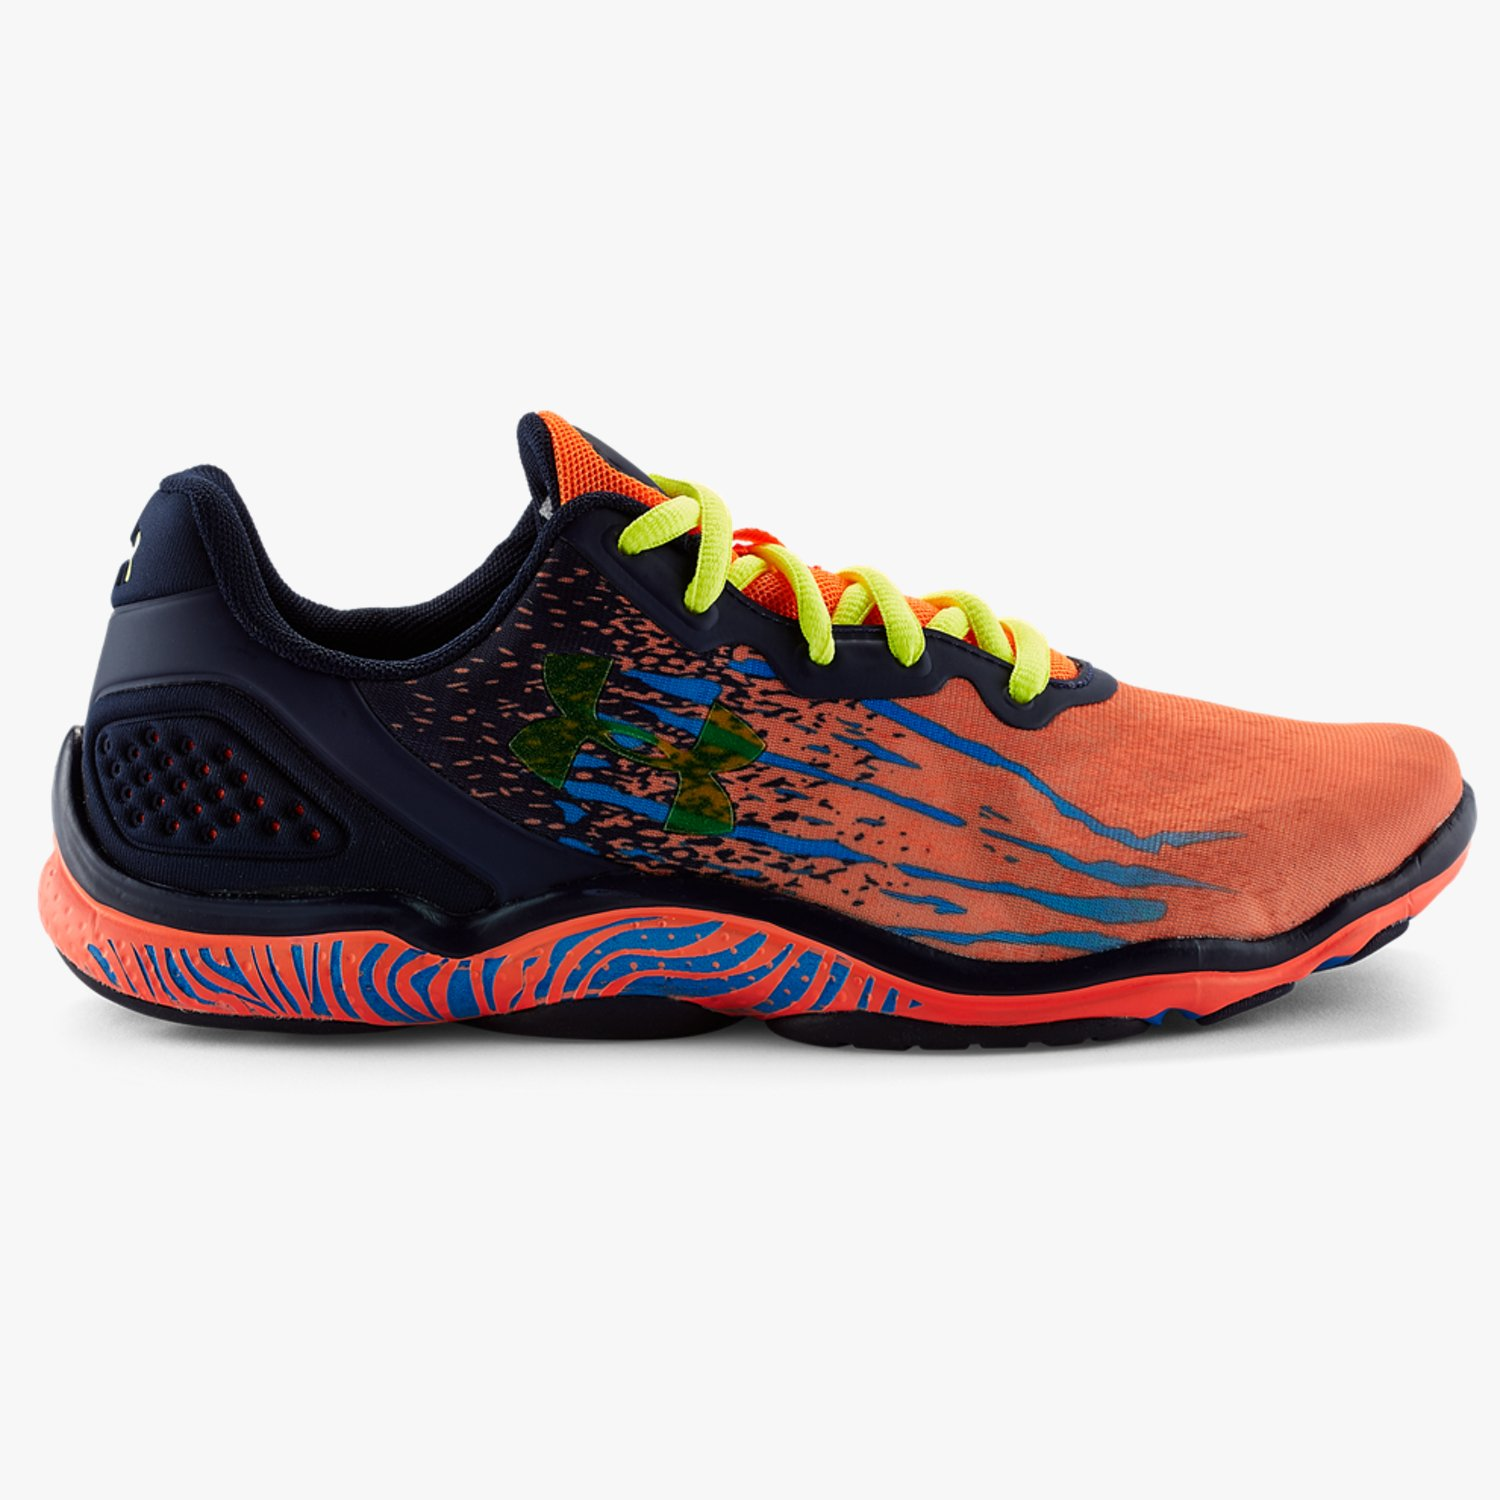 Under Armour UA Micro G Sting Training Shoes Afterburn/Faded Ink/Yellow Ray-30